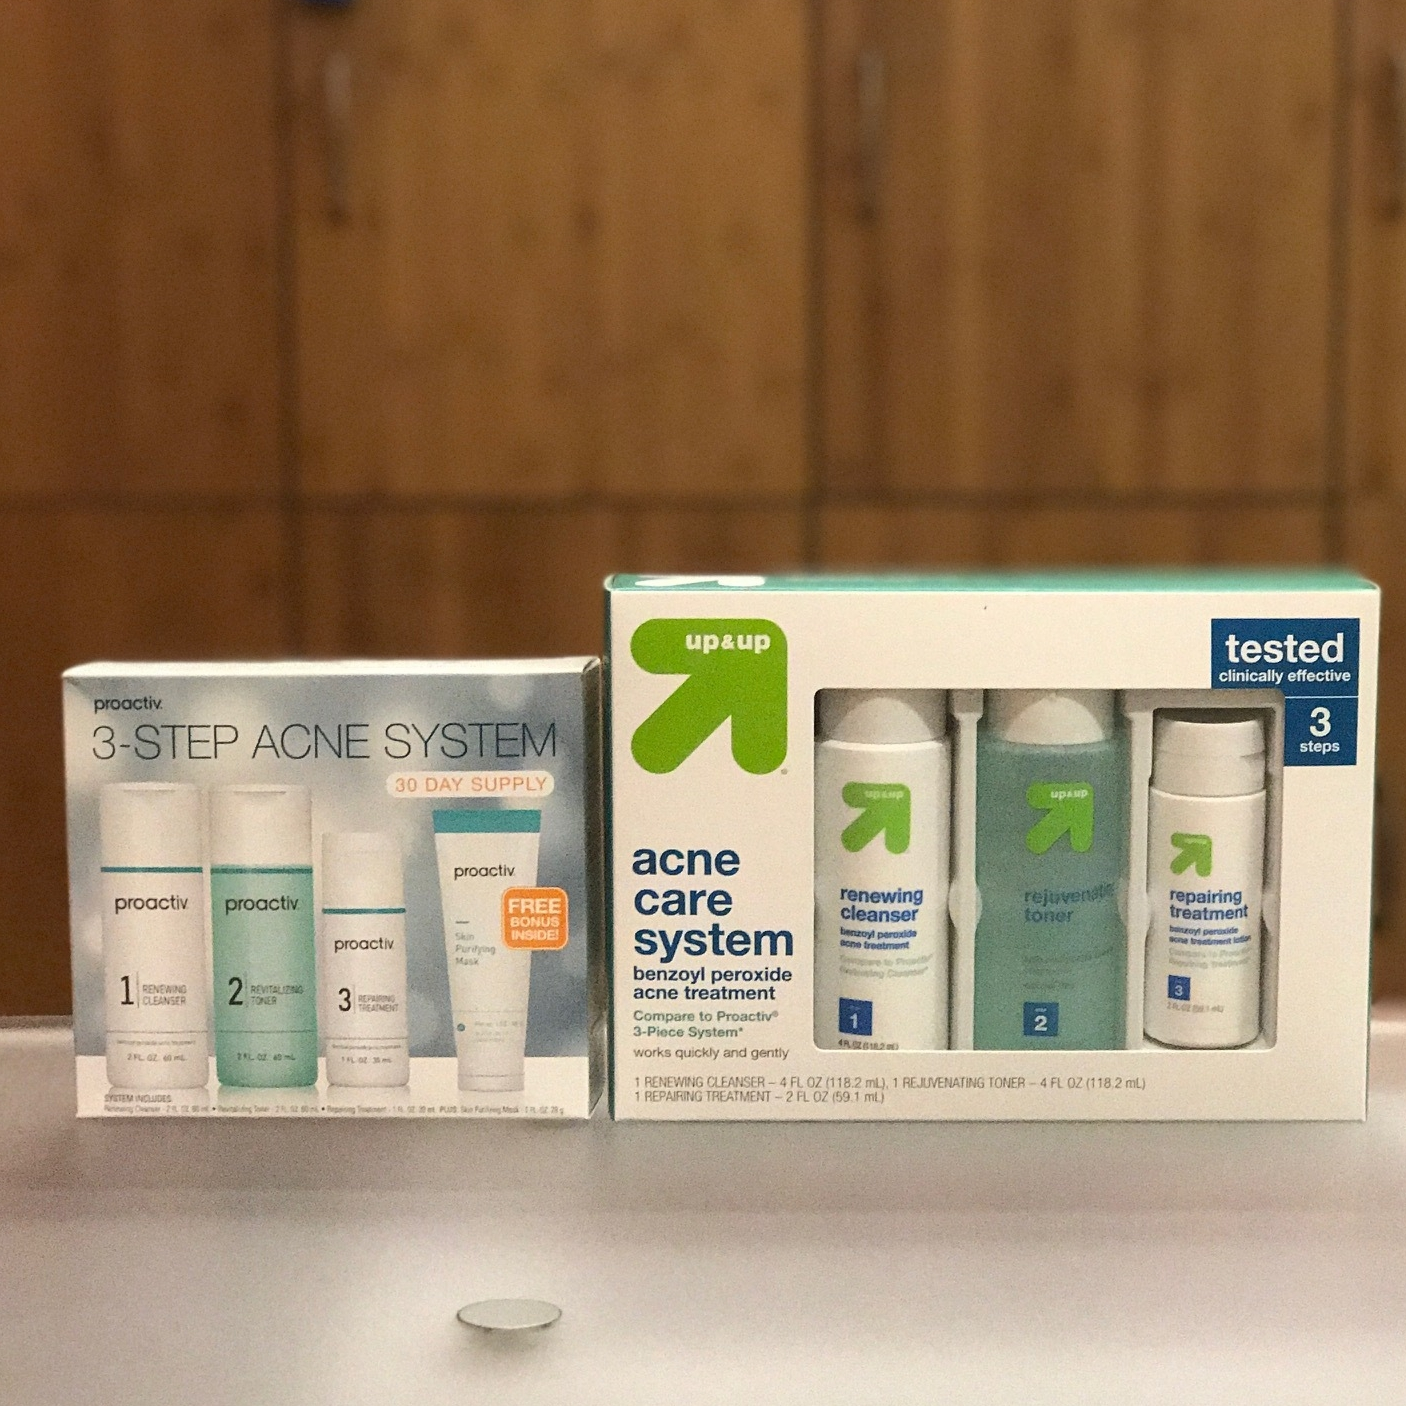 Proactiv 3 step system vs. up & up Acne Care System